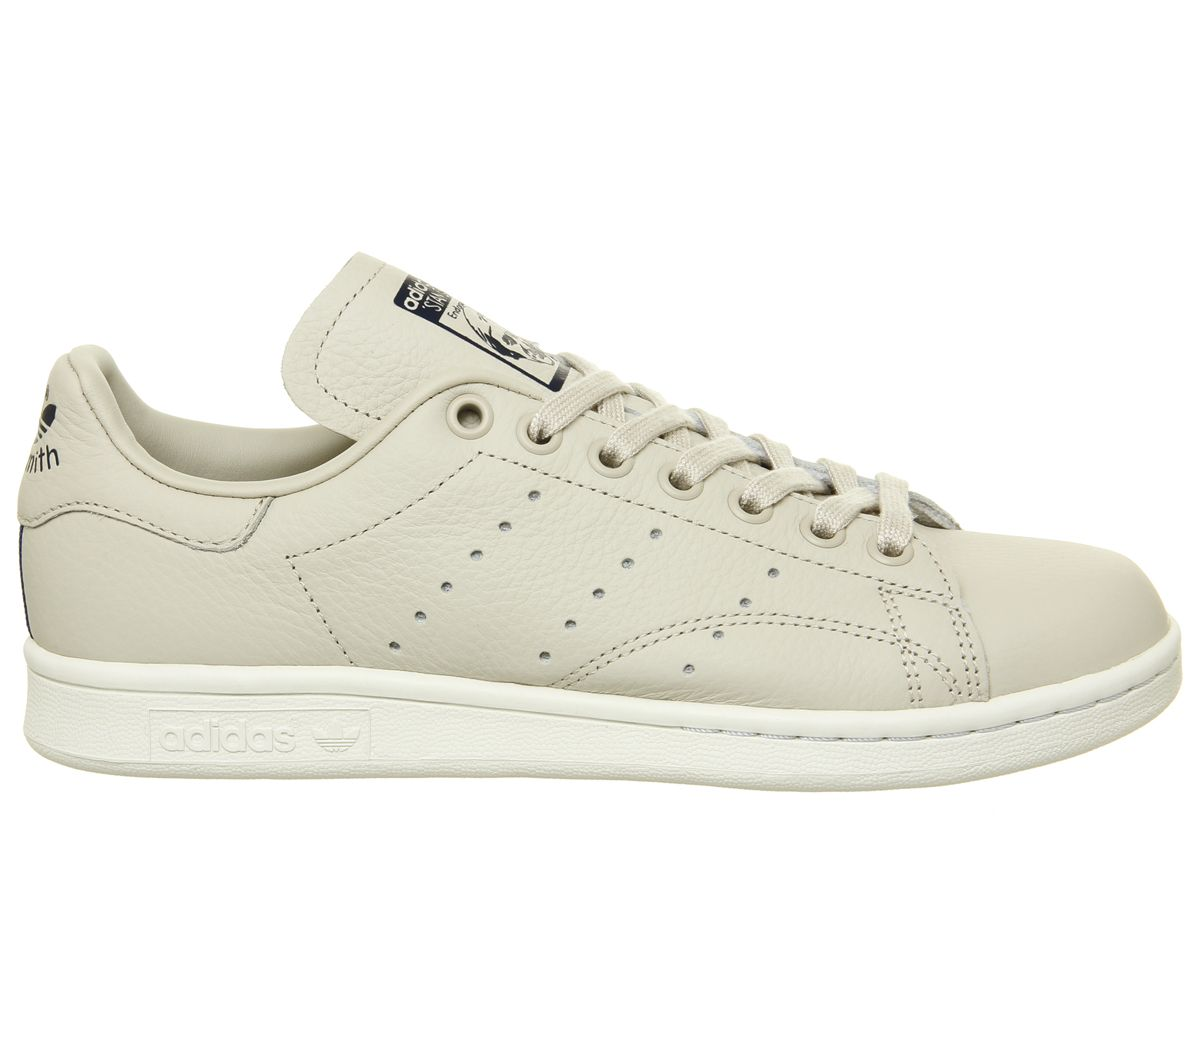 newest 79204 bae6a SENTINELLE Mens Adidas Stan Smith formateurs clairement brun formateurs  blanc chaussures